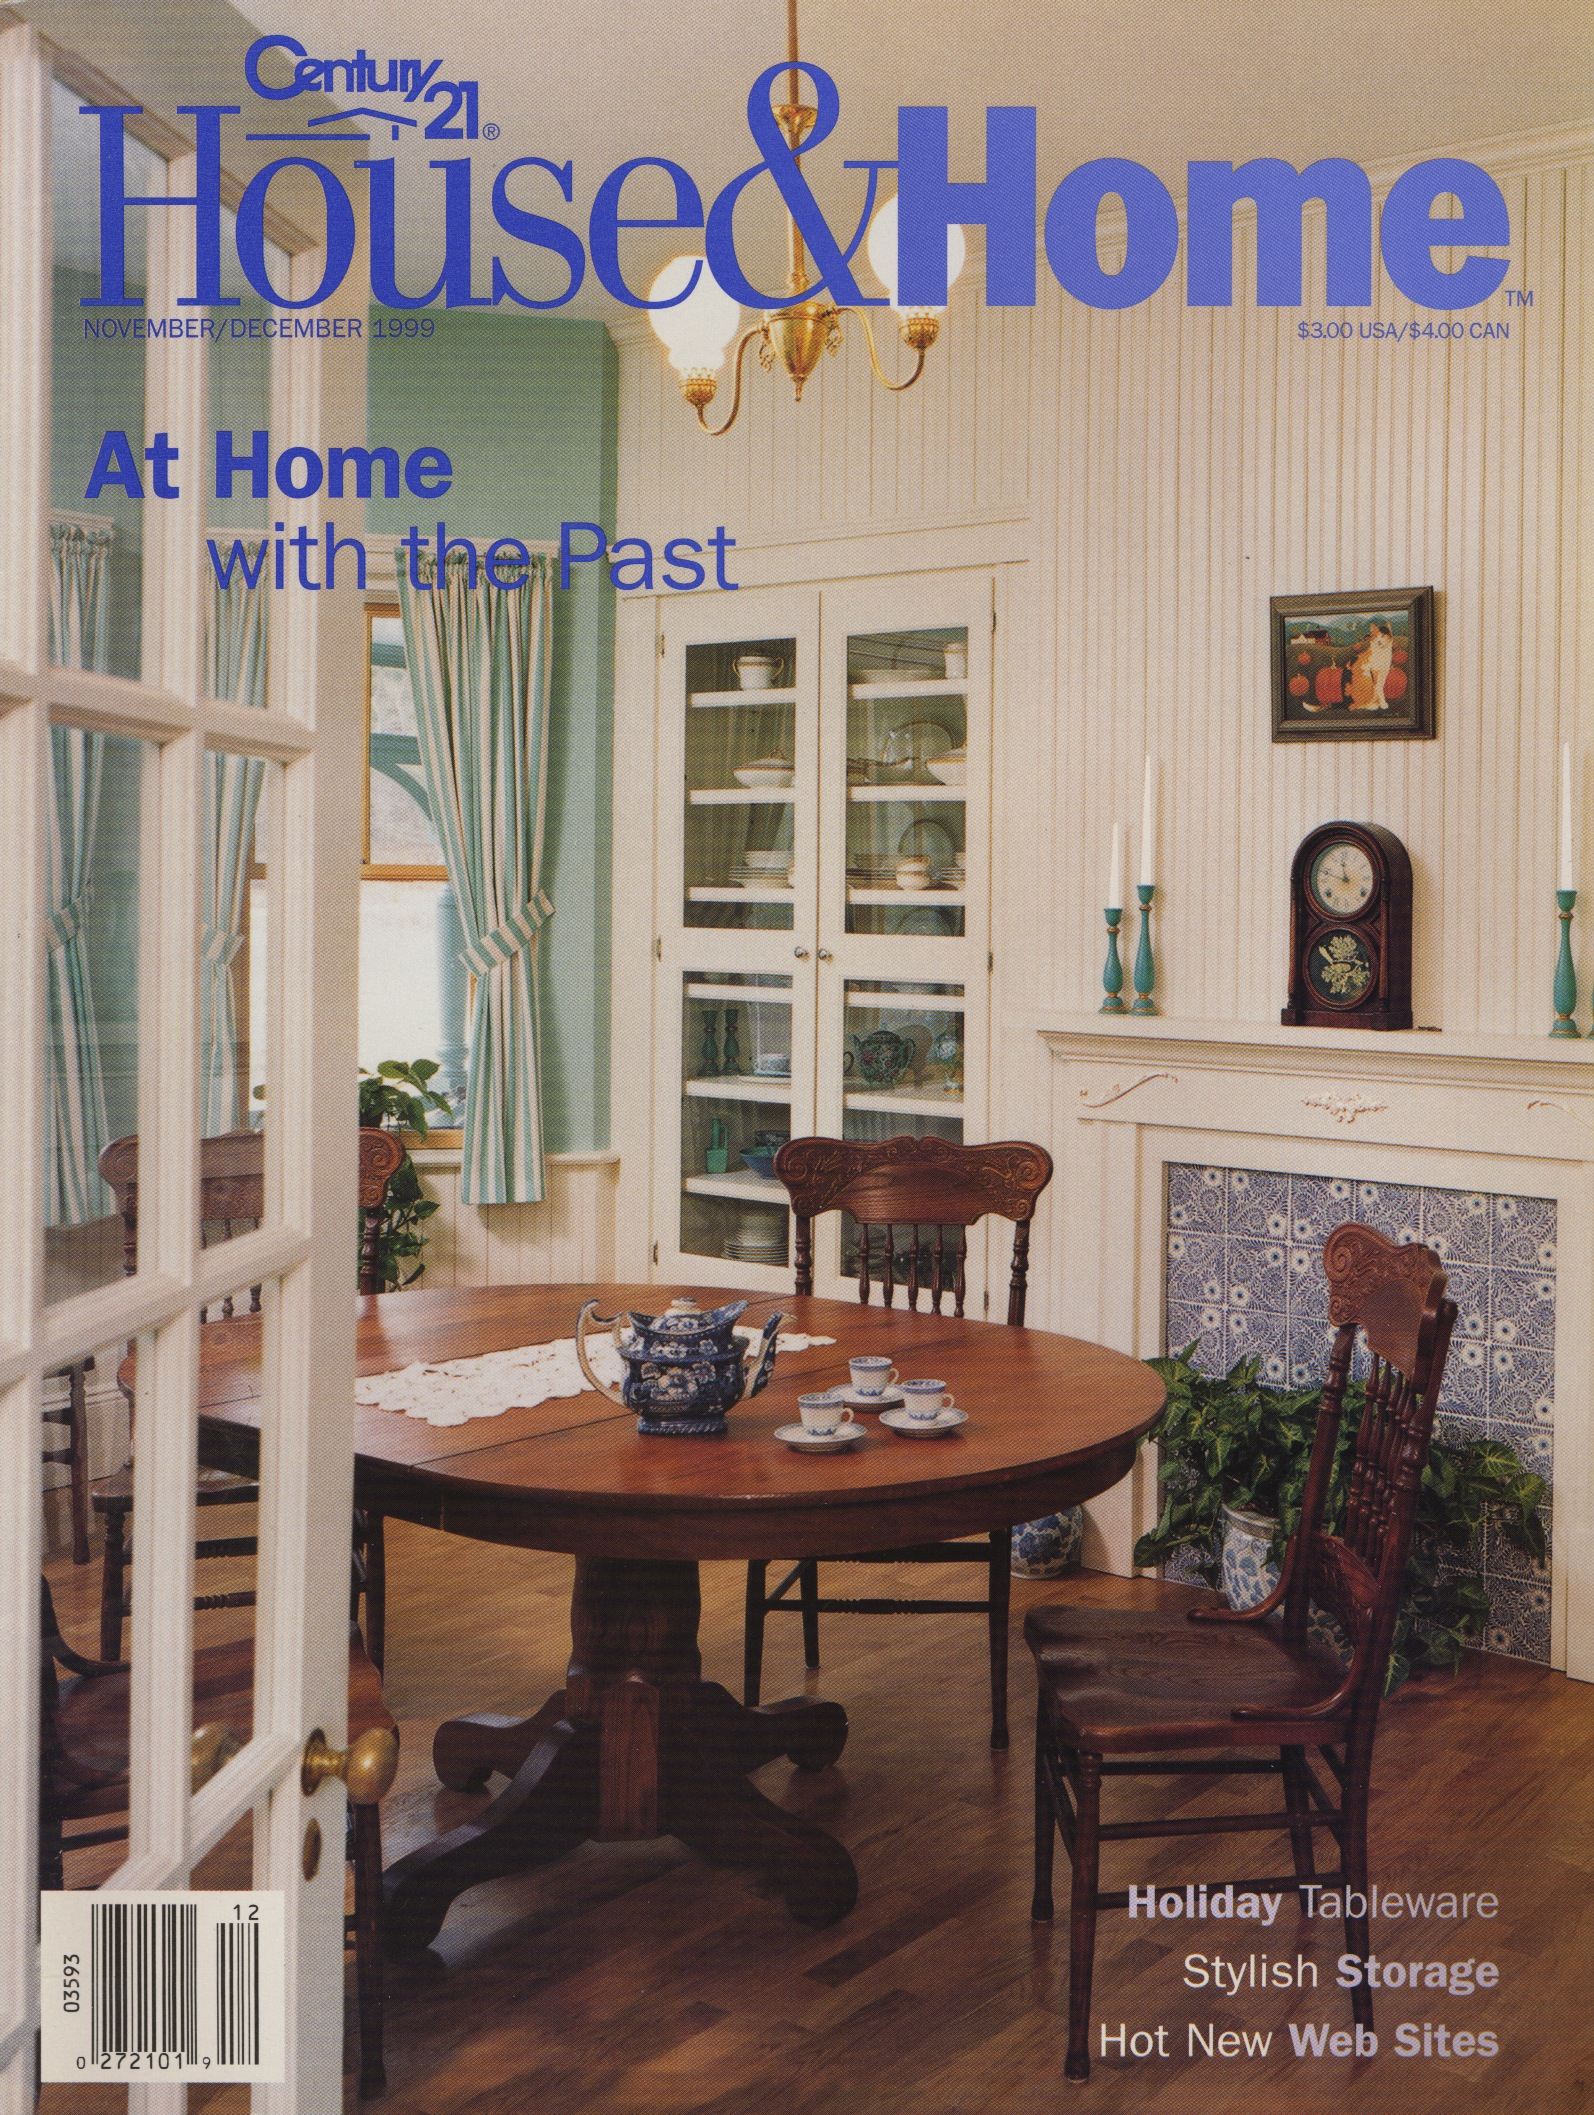 Century 21 House and Home - Cover.jpg